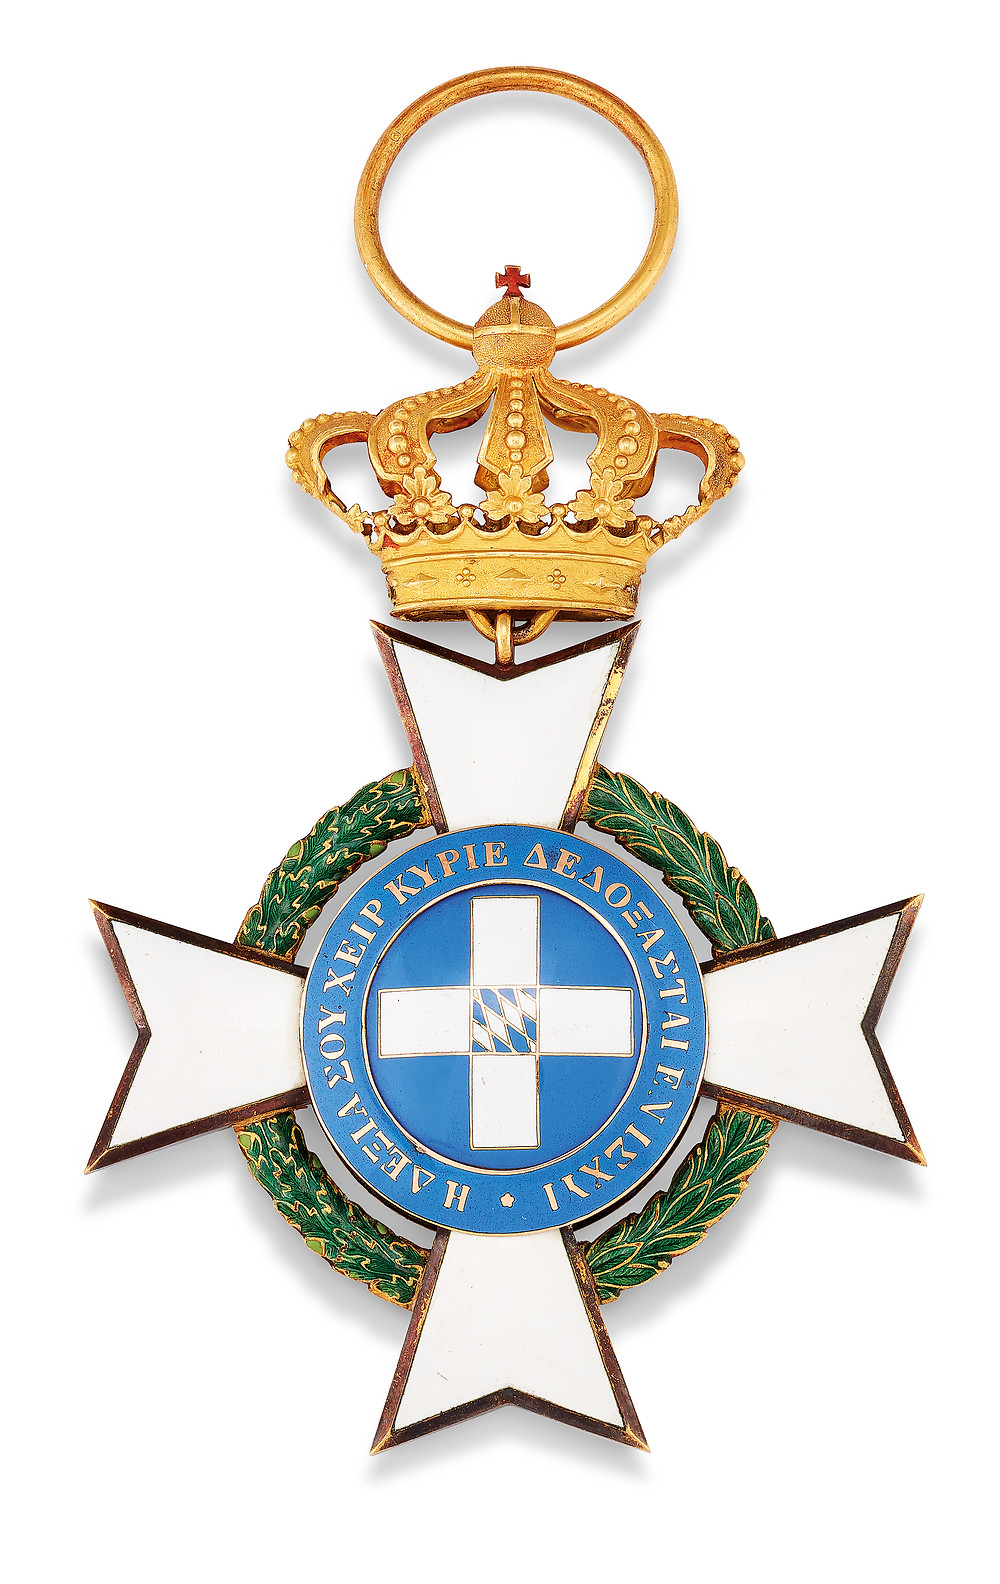 GREECE, ORDER OF THE REDEEMER, BADGE . White enamel Maltese Cross with laurel leaf surround to the central portrait of King Otho, facing right, blue enamel border, rev. Greek cross with central Bavarian coat of arms, in gold and silver gilt, in fitted case (star deficient), with three interesting documents dated 1838, extremely fine and rare Maltese Cross including suspension loop;12 cm. high